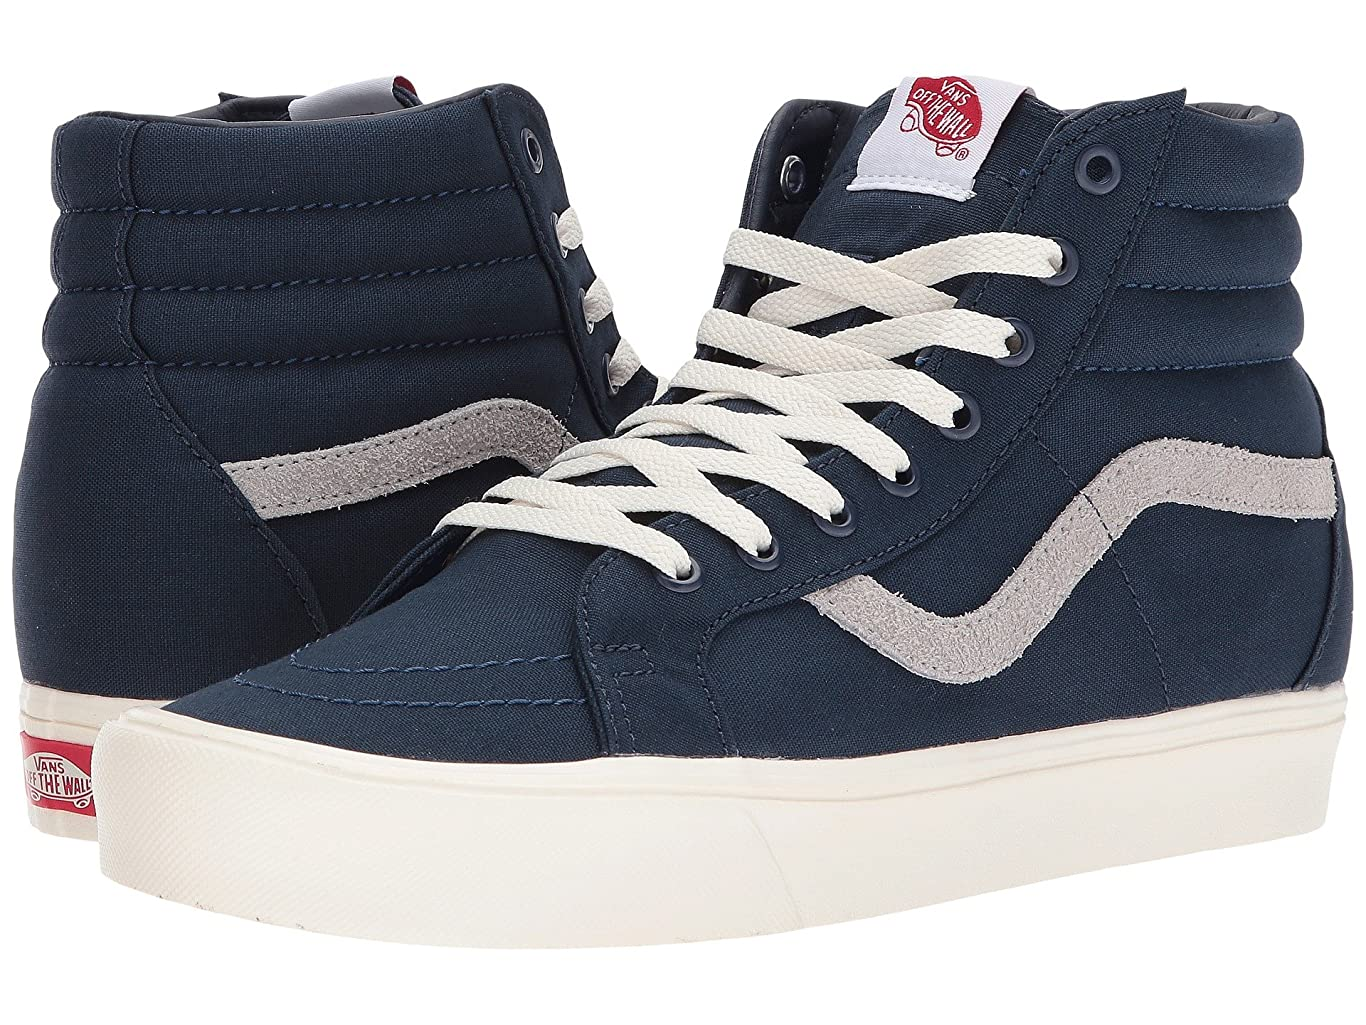 読む沼地恐ろしい(バンズ) VANS メンズスニーカー?靴 SK8-Hi Reissue Lite (Canvas) Dress Blues/Drizzle/Marshmallow Men's 8, Women's 9.5 (26cm(レディース26.5cm)) Medium